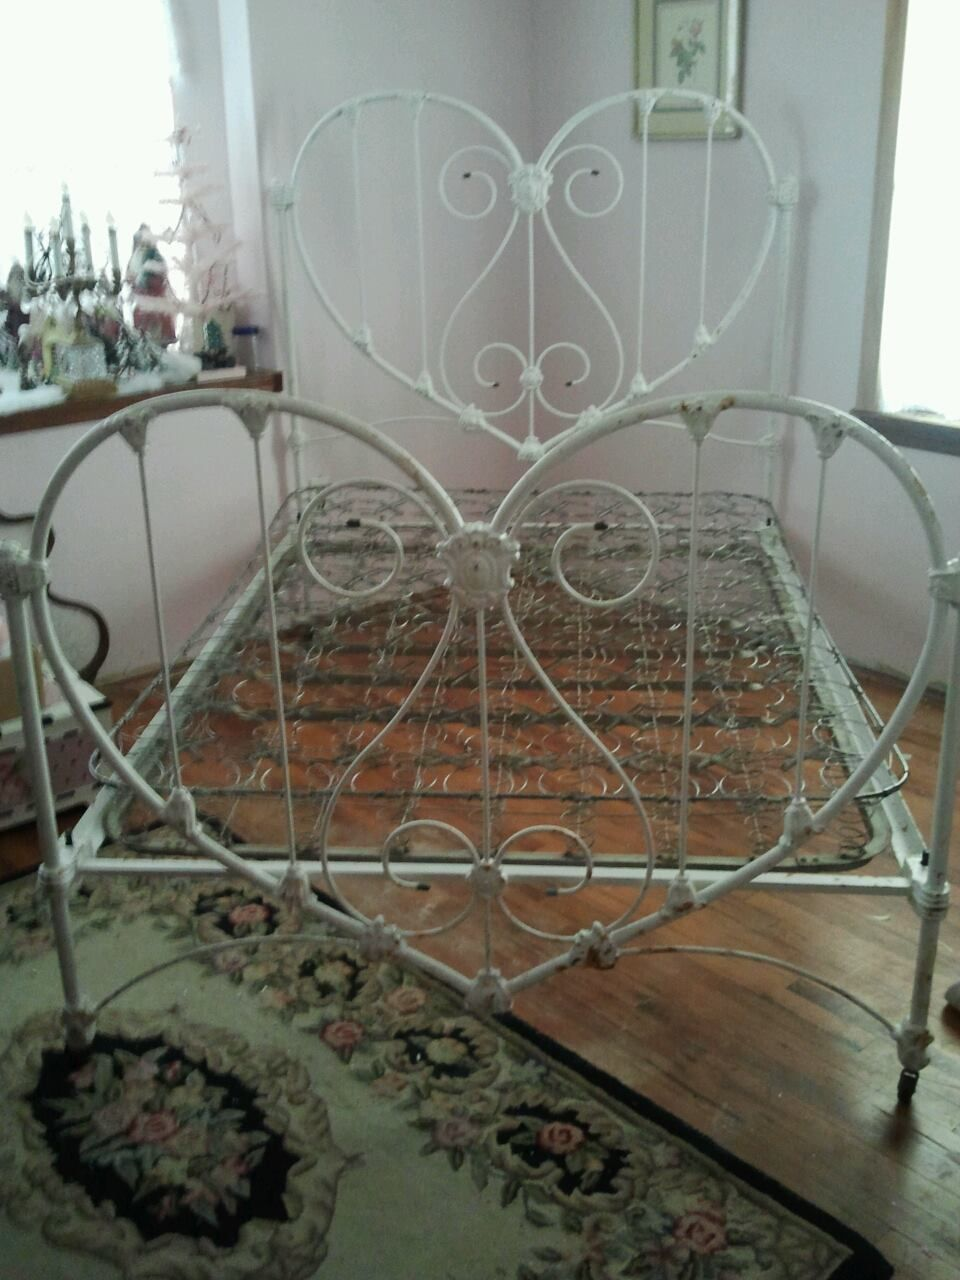 Well Here It Is My Heart Shaped Antique Iron Bed Could Not Wait To Post It I Will Repost When The Room Is Fini Antique Iron Beds Iron Bed Iron Bed